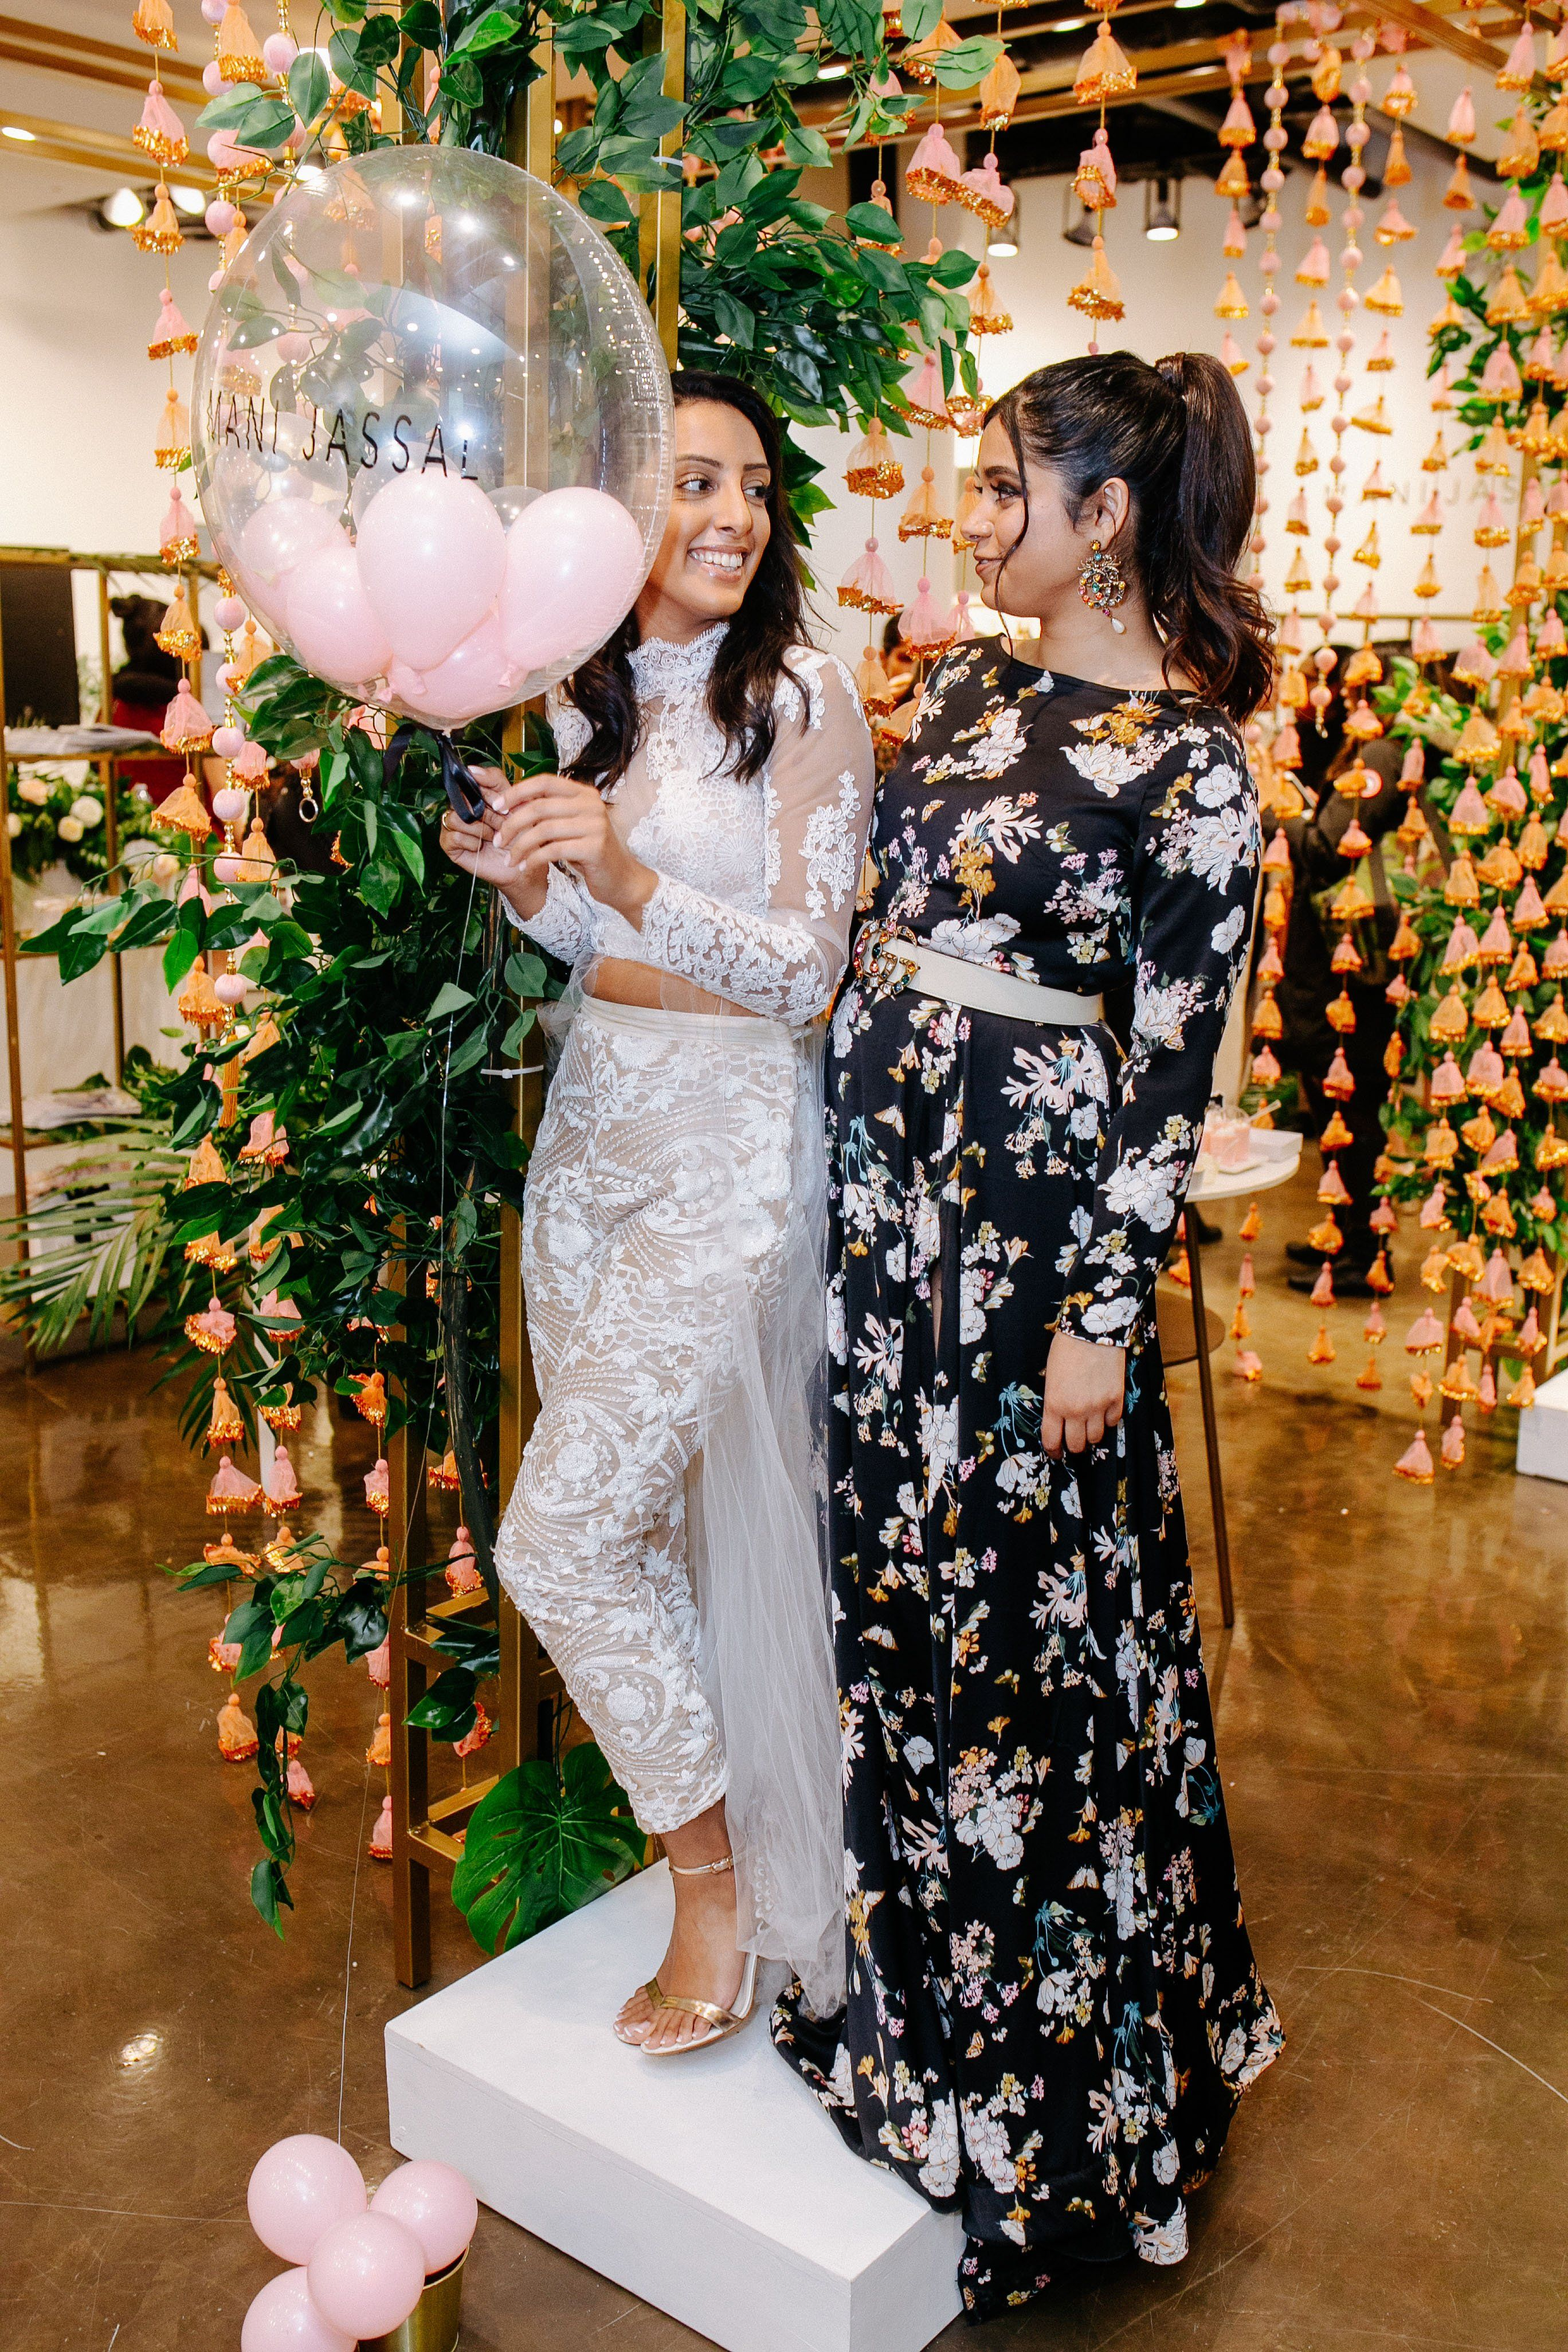 MANI JASSAL Yorkville Launch Event with ELLE Canada (With